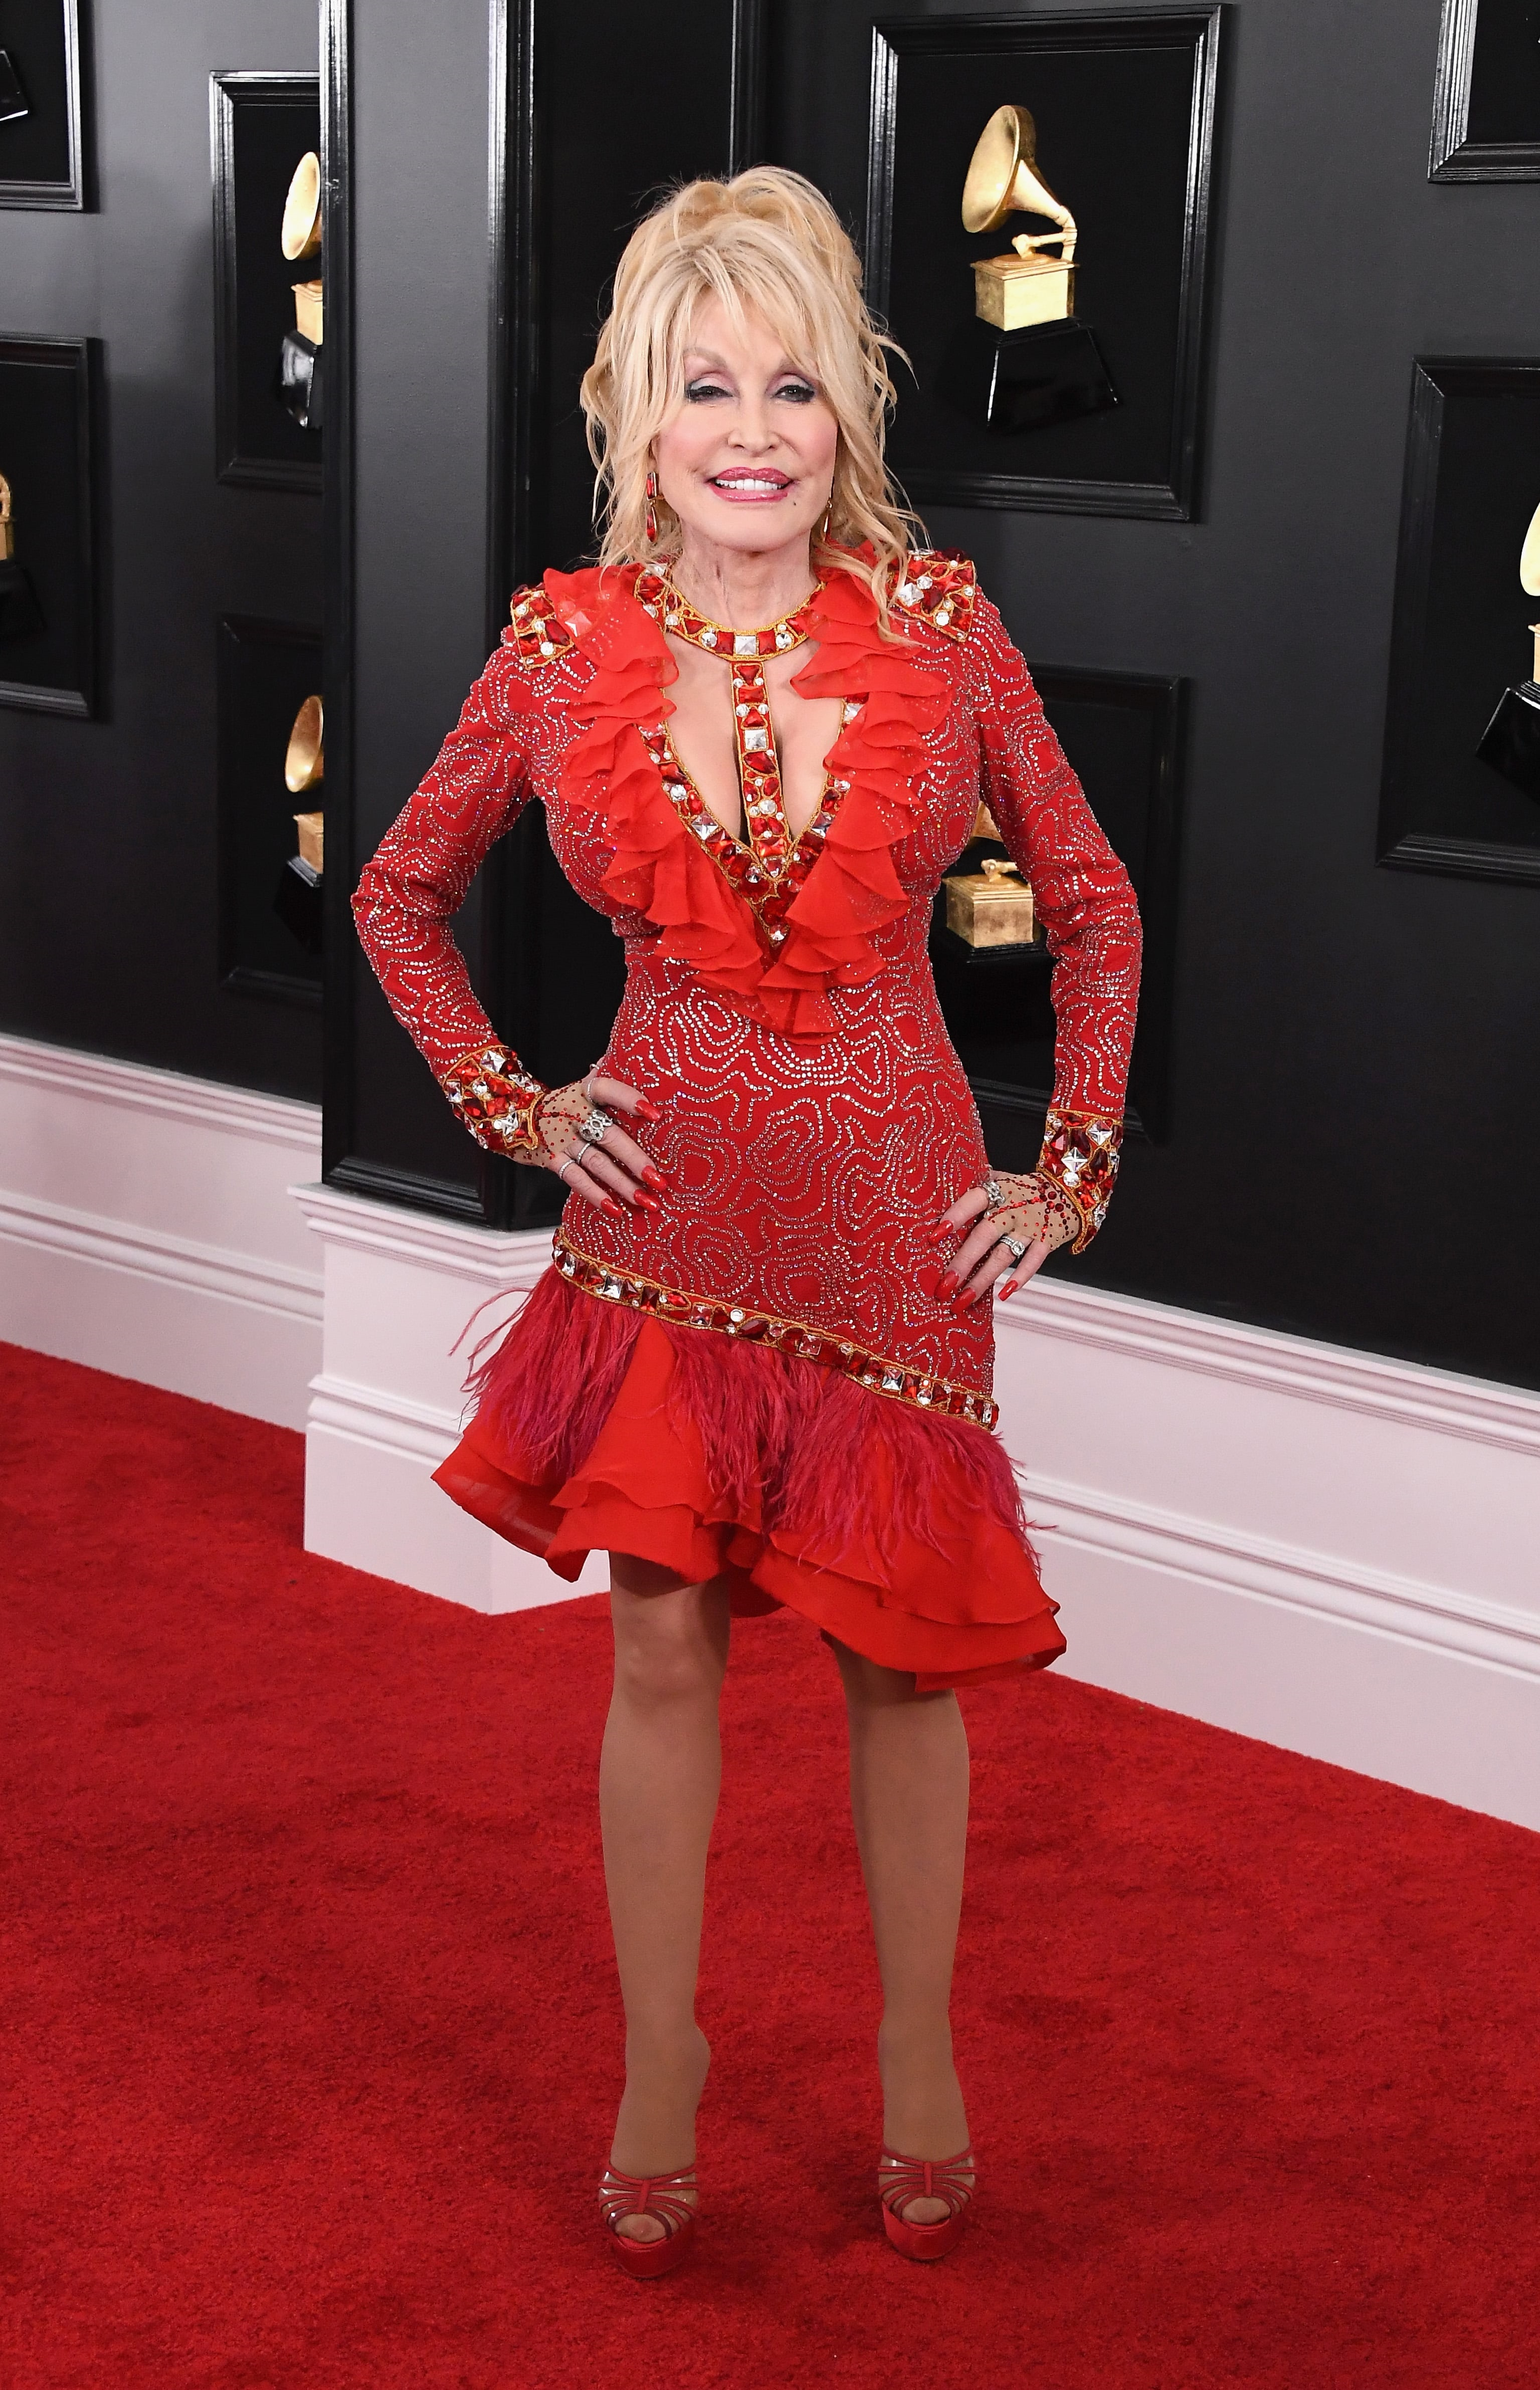 LOS ANGELES, CA - FEBRUARY 10: Dolly Parton attends the 61st Annual GRAMMY Awards at Staples Center on February 10, 2019 in Los Angeles, California. (Photo by Steve Granitz/WireImage)